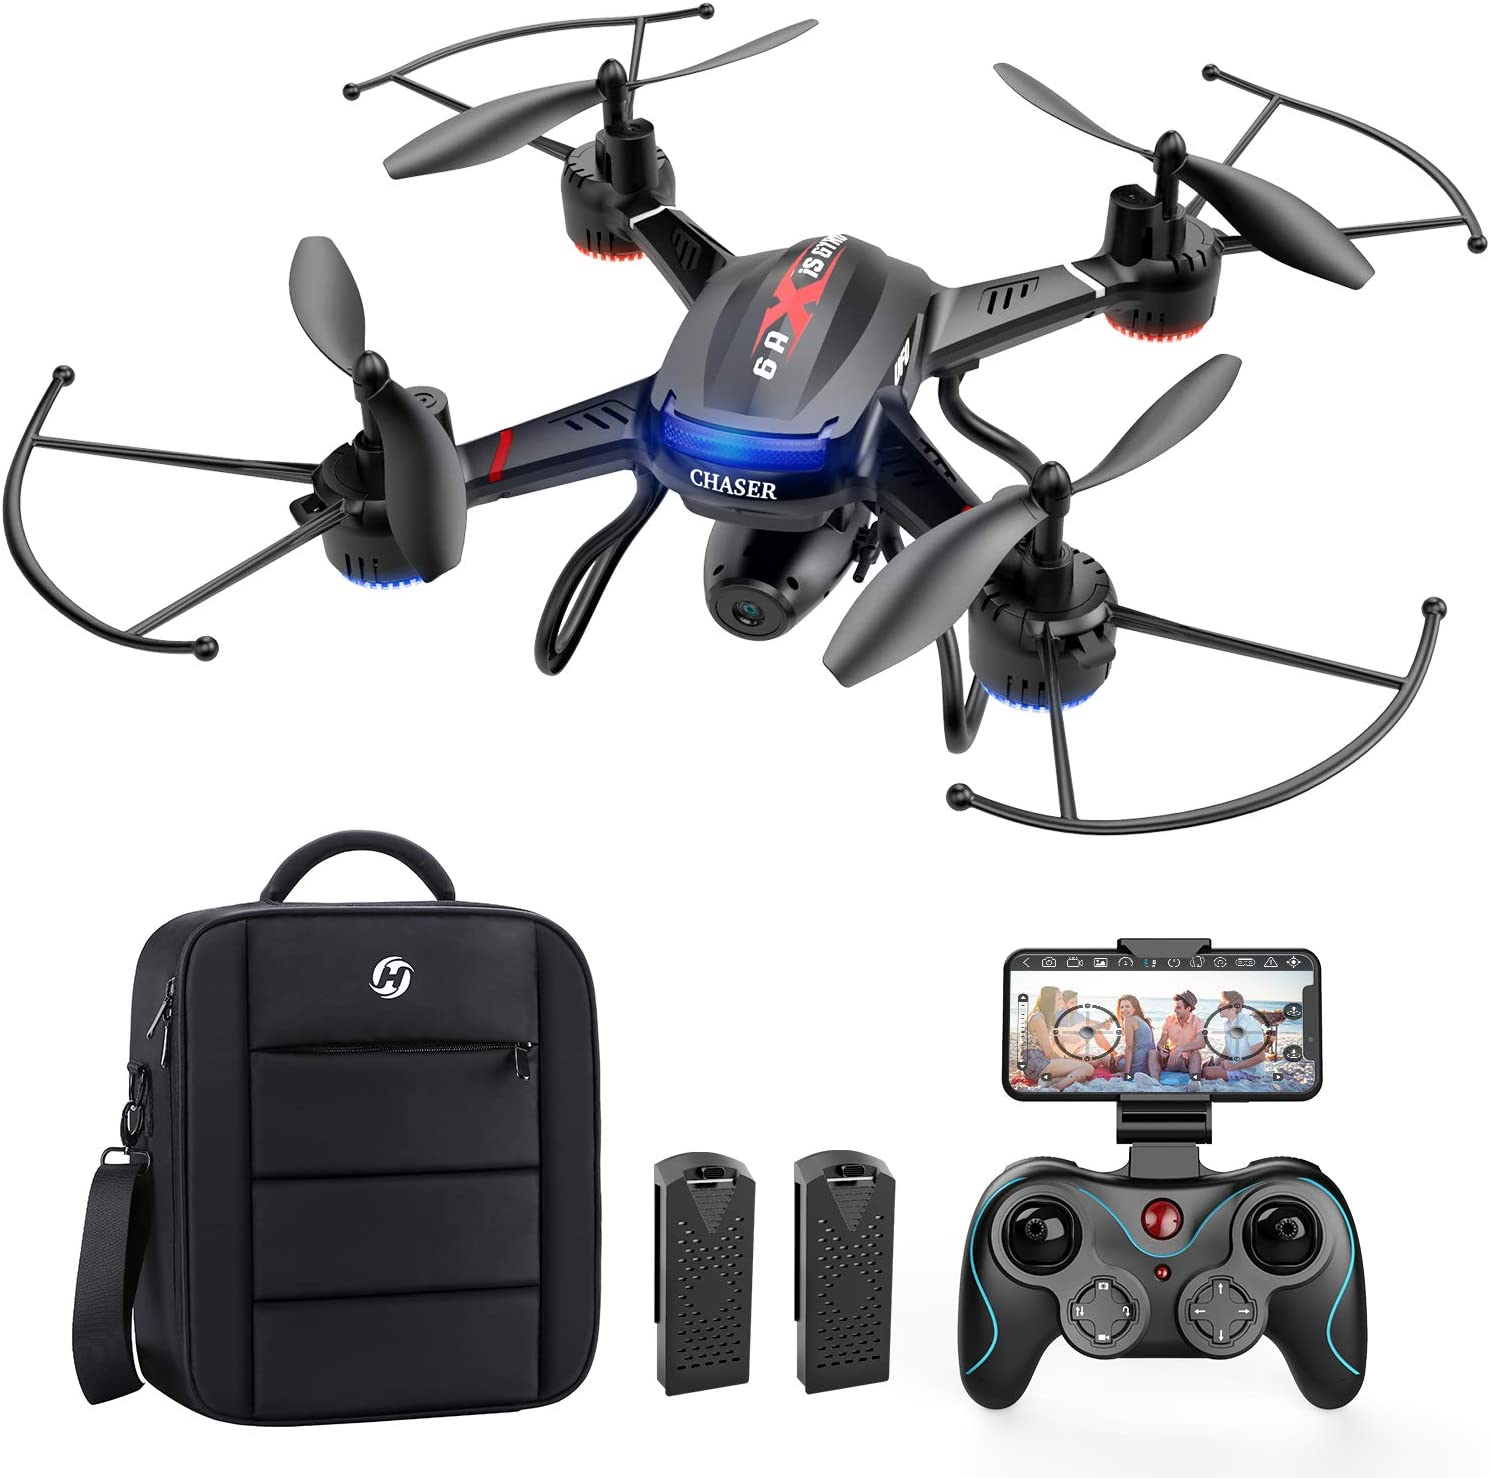 Holy Stone F181W 1080P FPV Drone with HD Camera for Adult Kid Beginner, RC Quadcopter with Carrying Case, Voice Control, Gesture Control, Wide-Angle Live Video, Altitude Hold, 2 Batteries, Easy to Fly